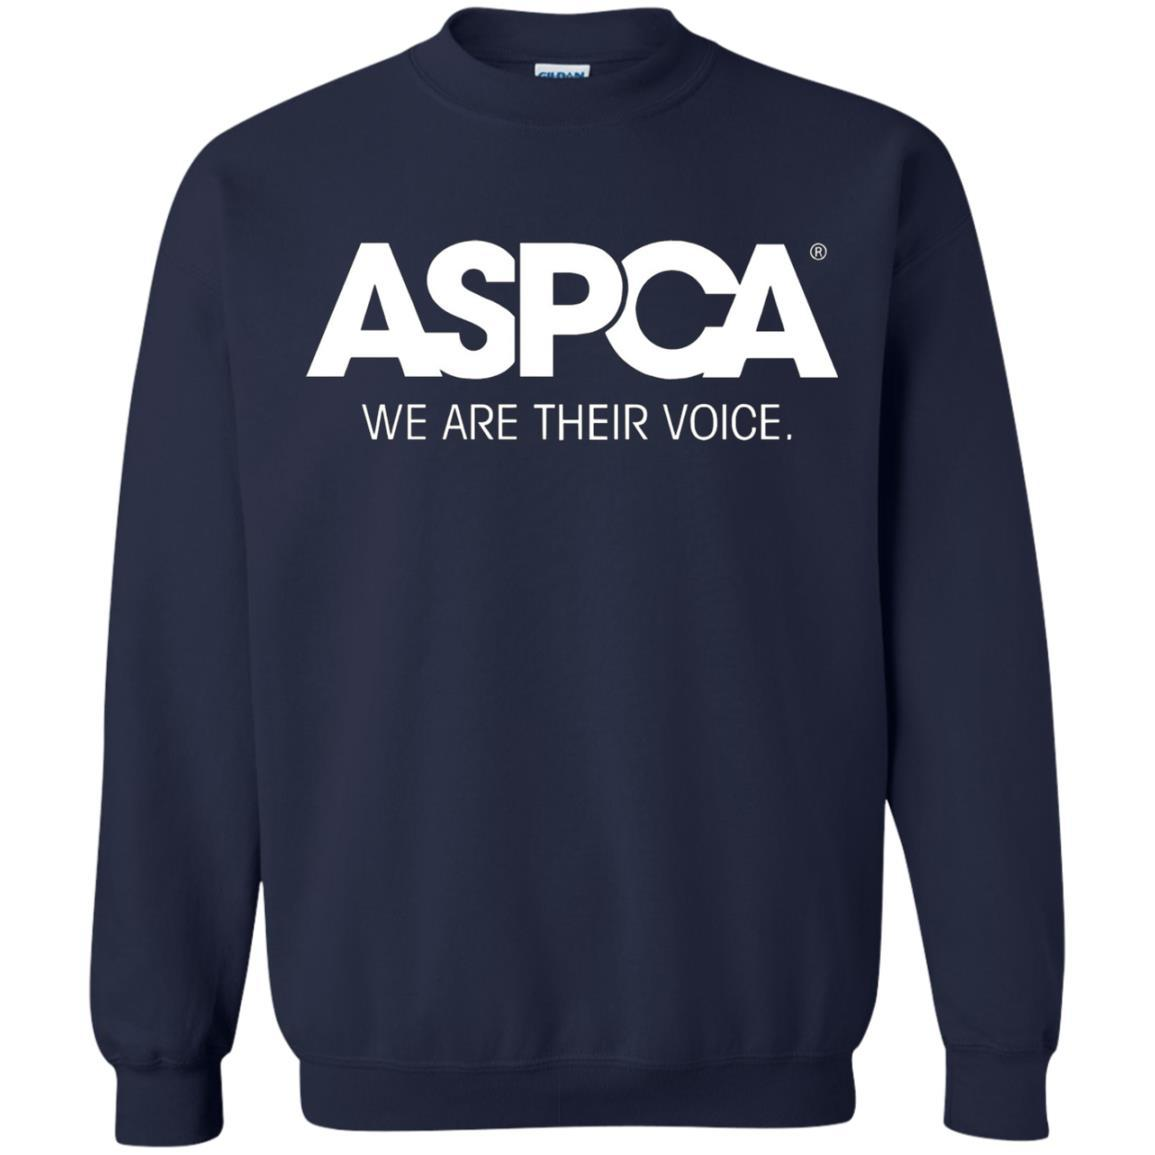 ASPCA Apparel - Crewneck Pullover Sweatshirt Navy / 5XL